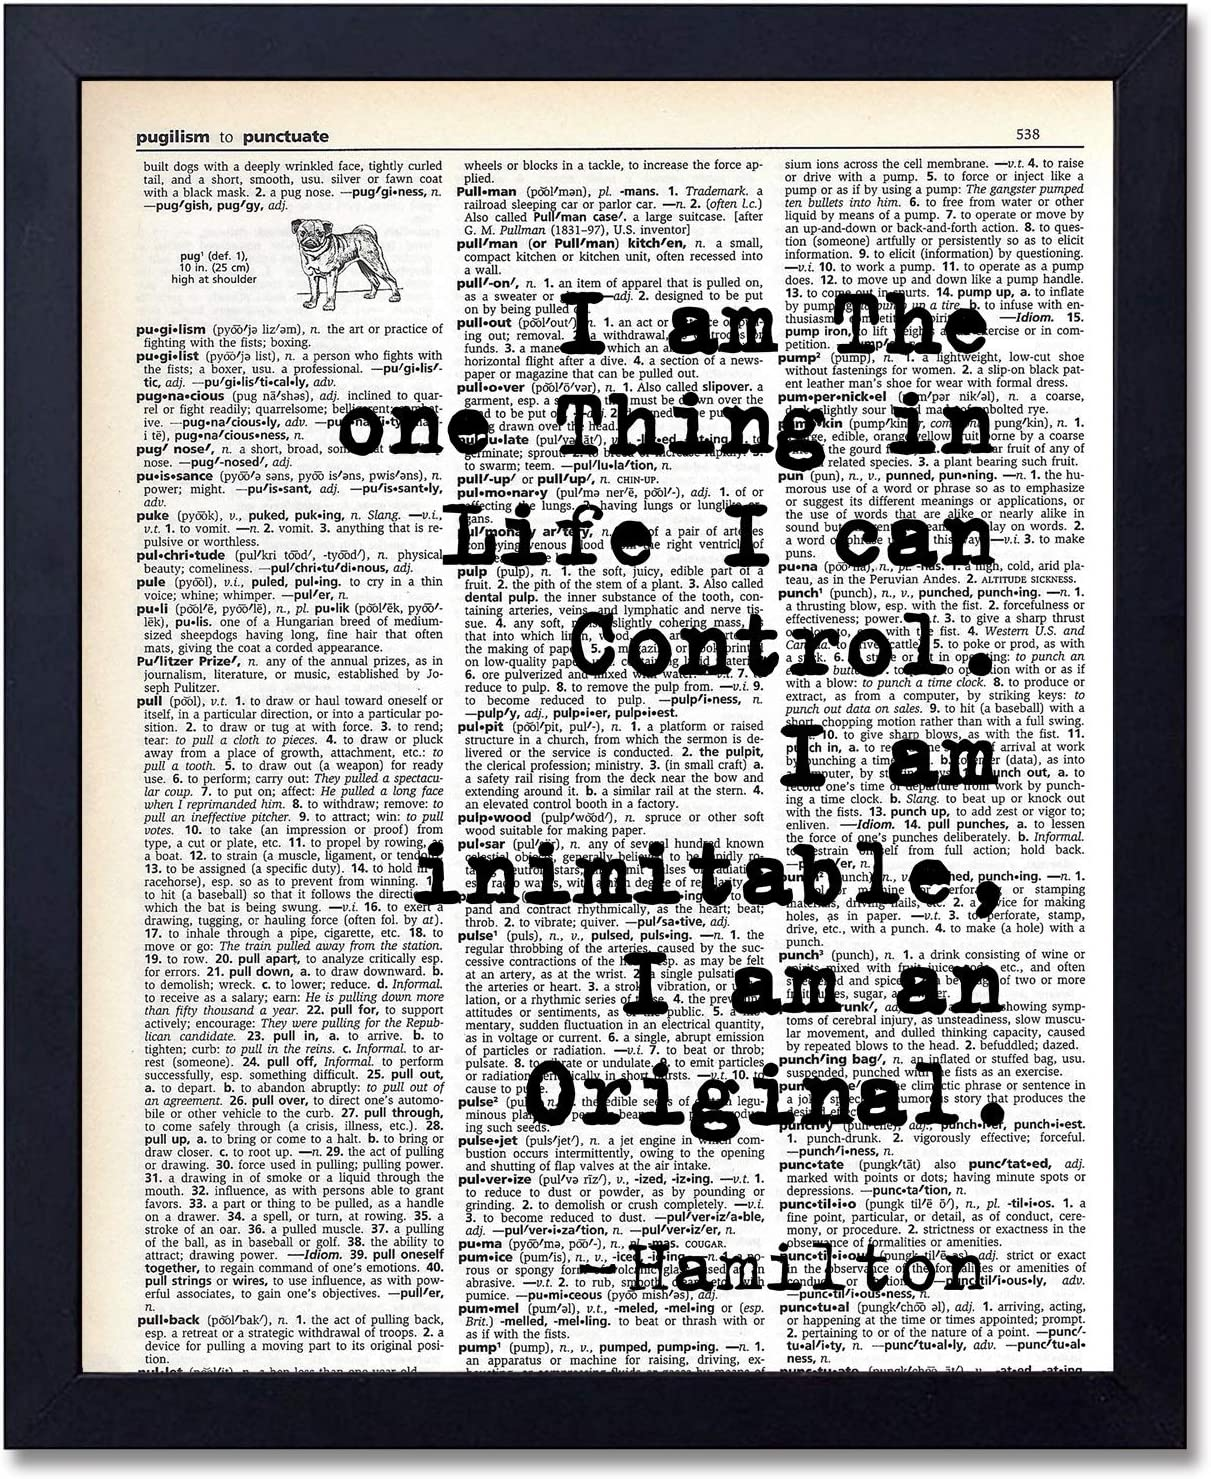 akeke Motivational Inspirational Hamilton Quote Wall Art Decor Dictionary Print, Home Decoration Poster for Bedroom, Office, Gift for History Fans, Unframed 8x10 inches